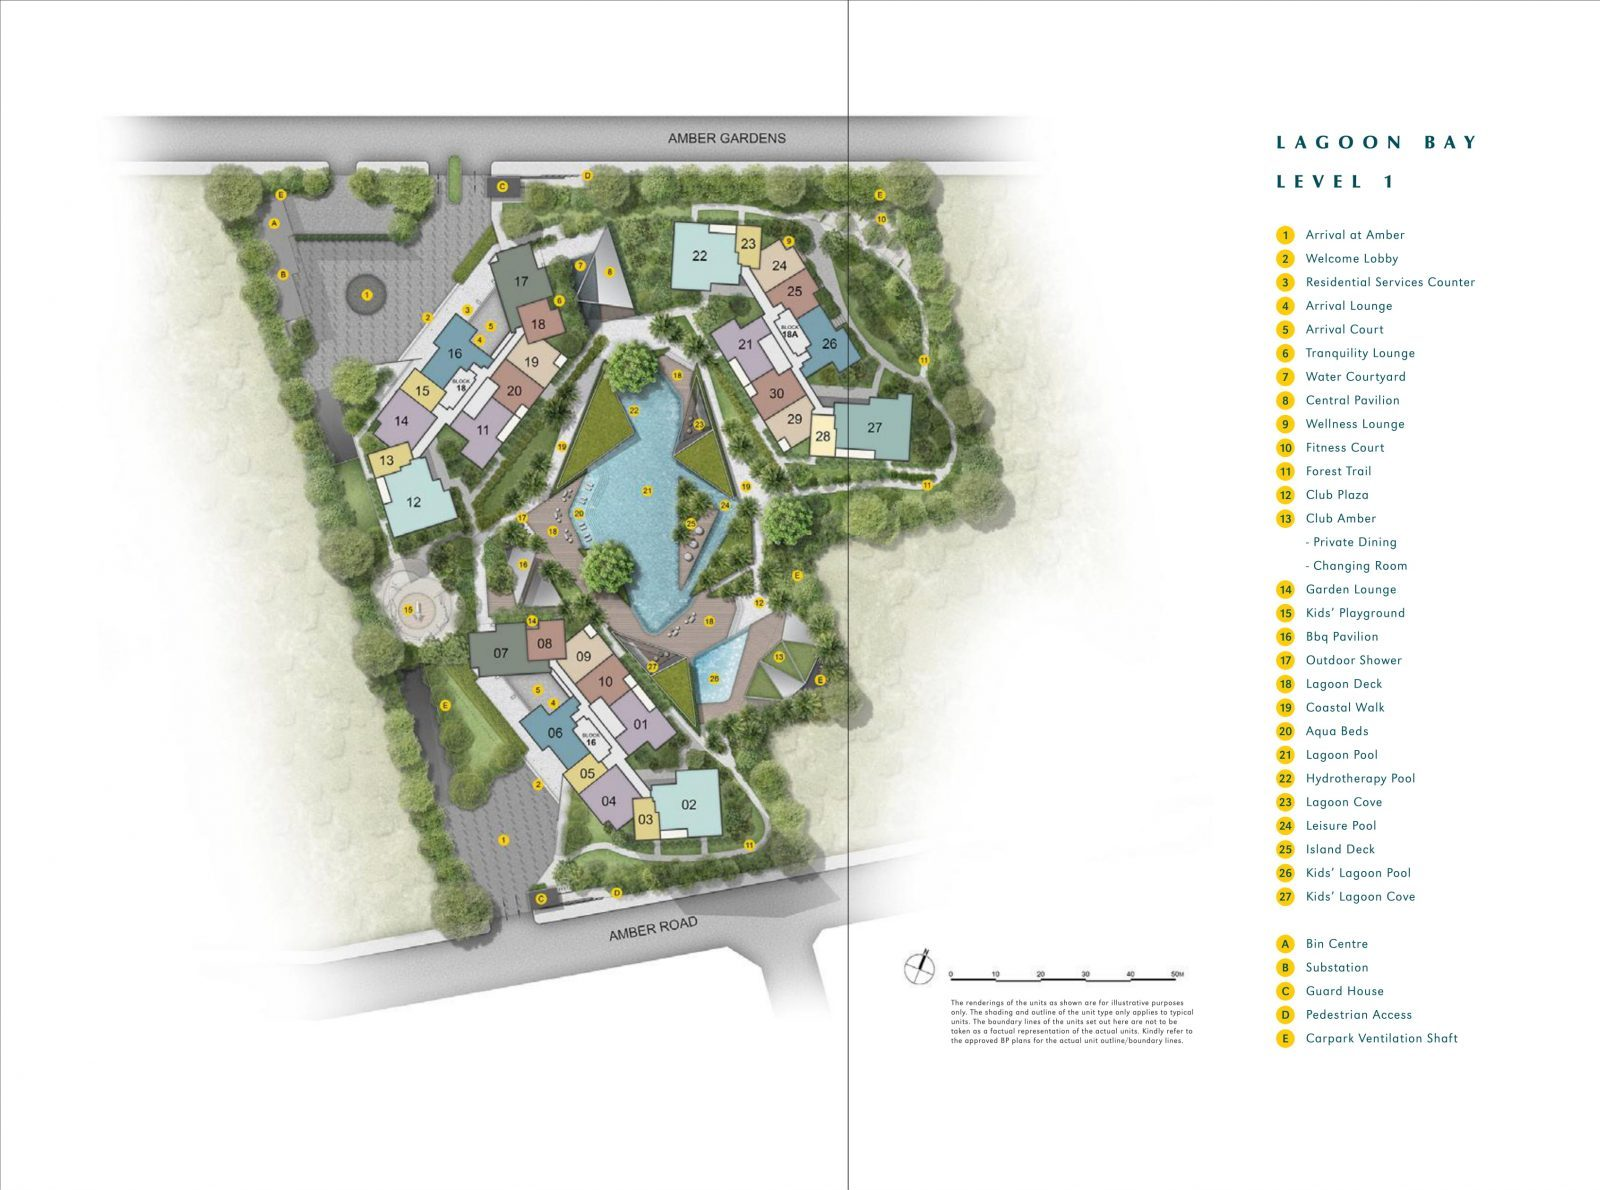 Amber Park's site plan and facilities